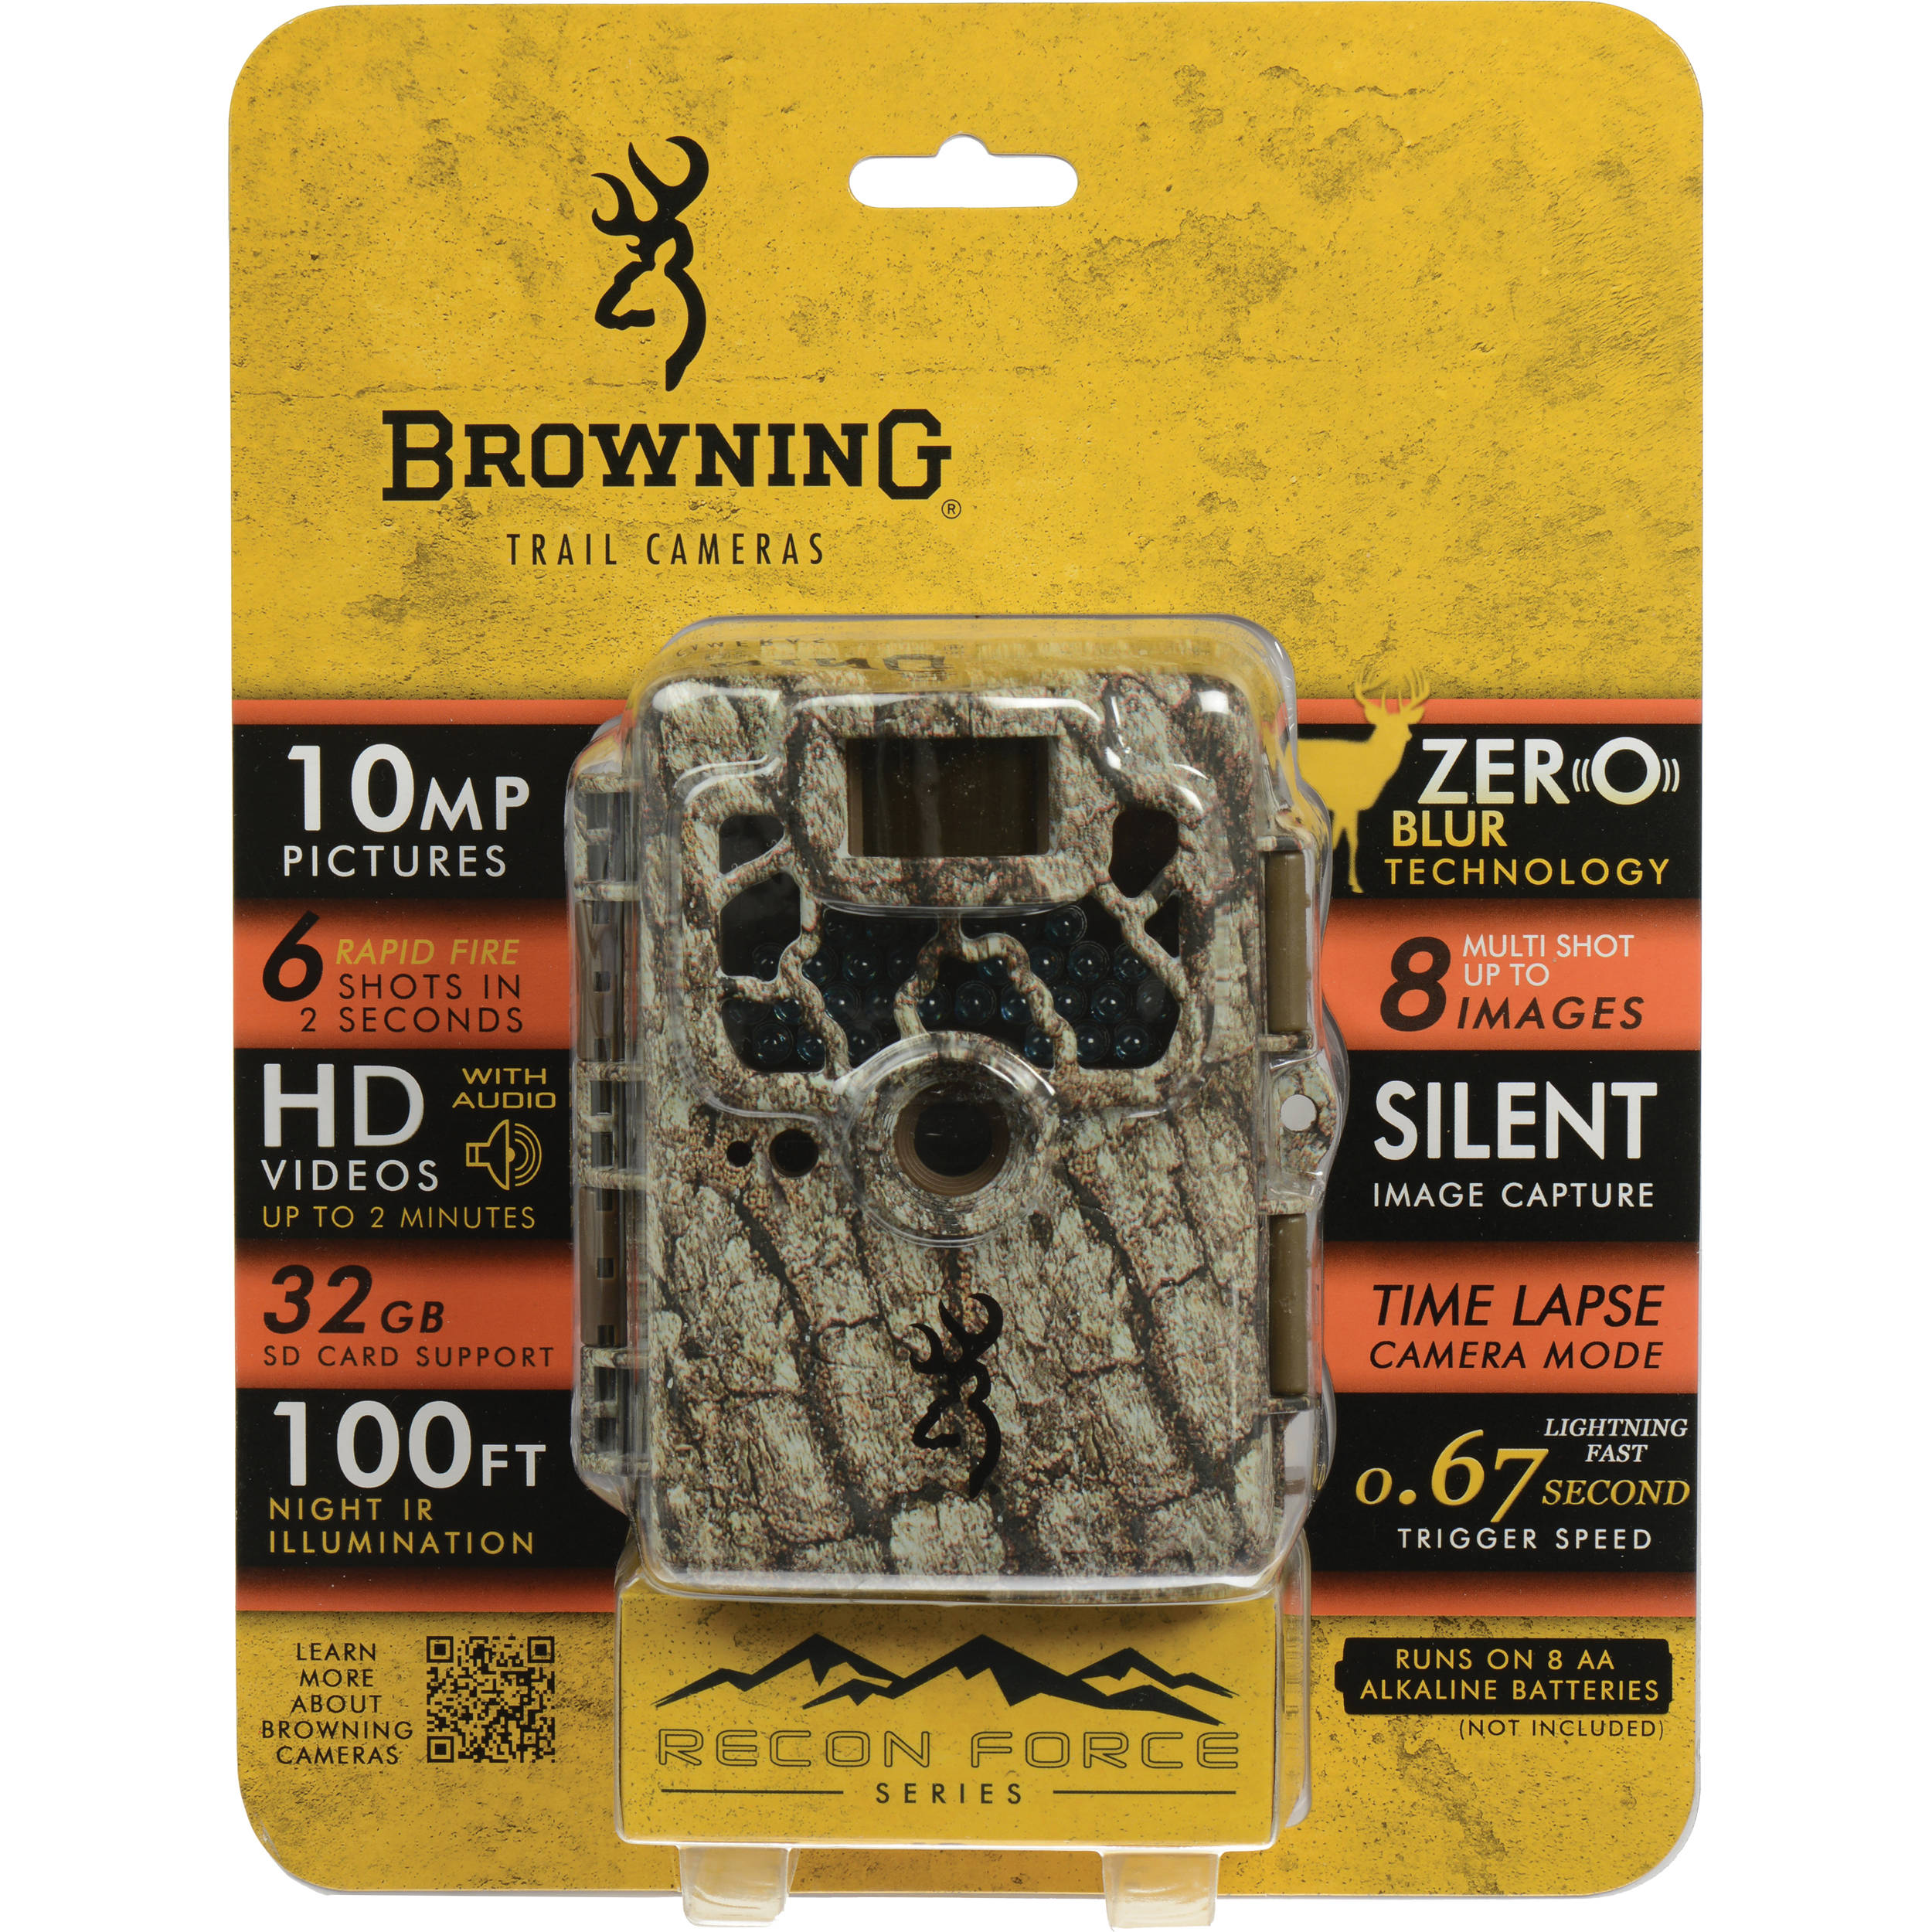 Browning Recon Force XR Series Trail Camera (Camo) BTC 2XR B&H